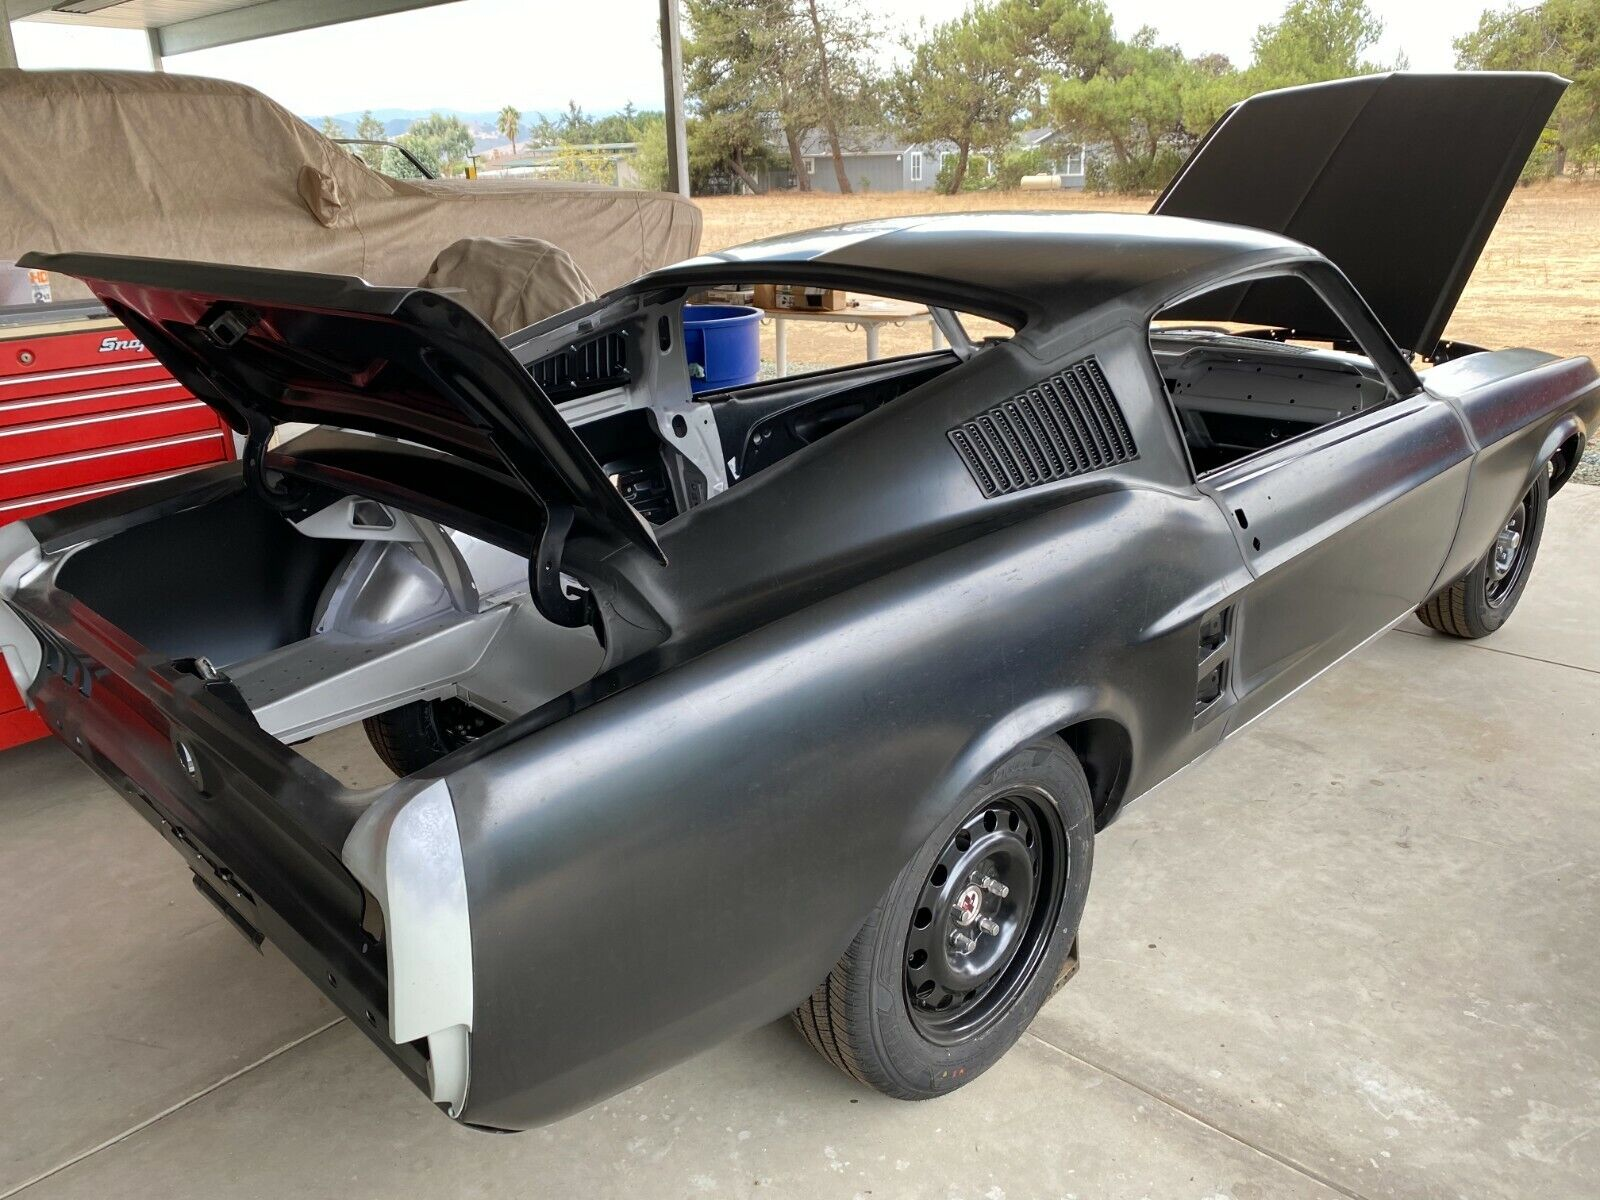 New 1967 Fastback Body Shell - All New - No Used Parts - Made in USA